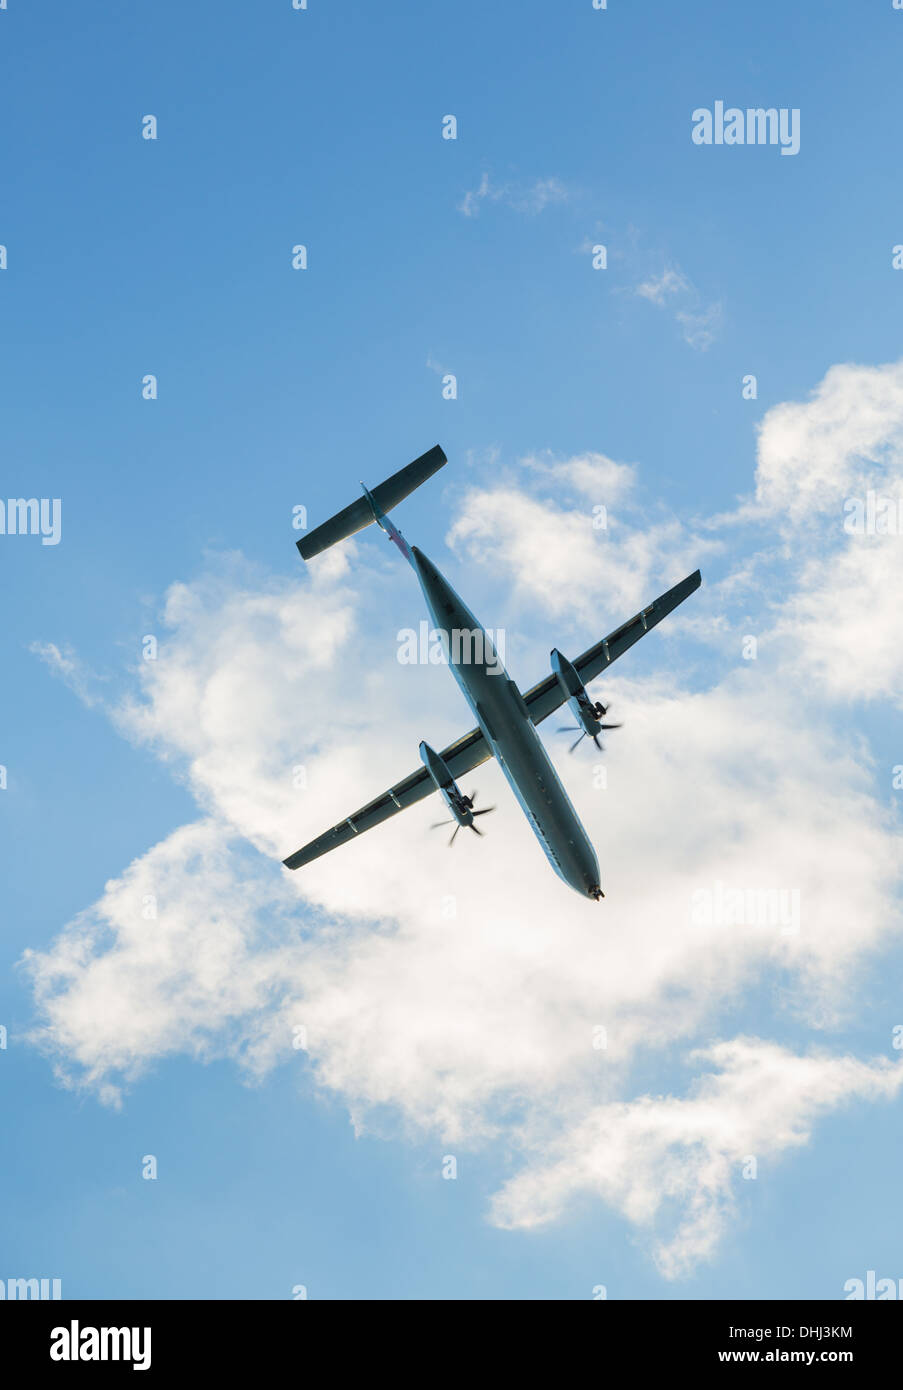 Turbo prop aircraft / plane - Stock Image